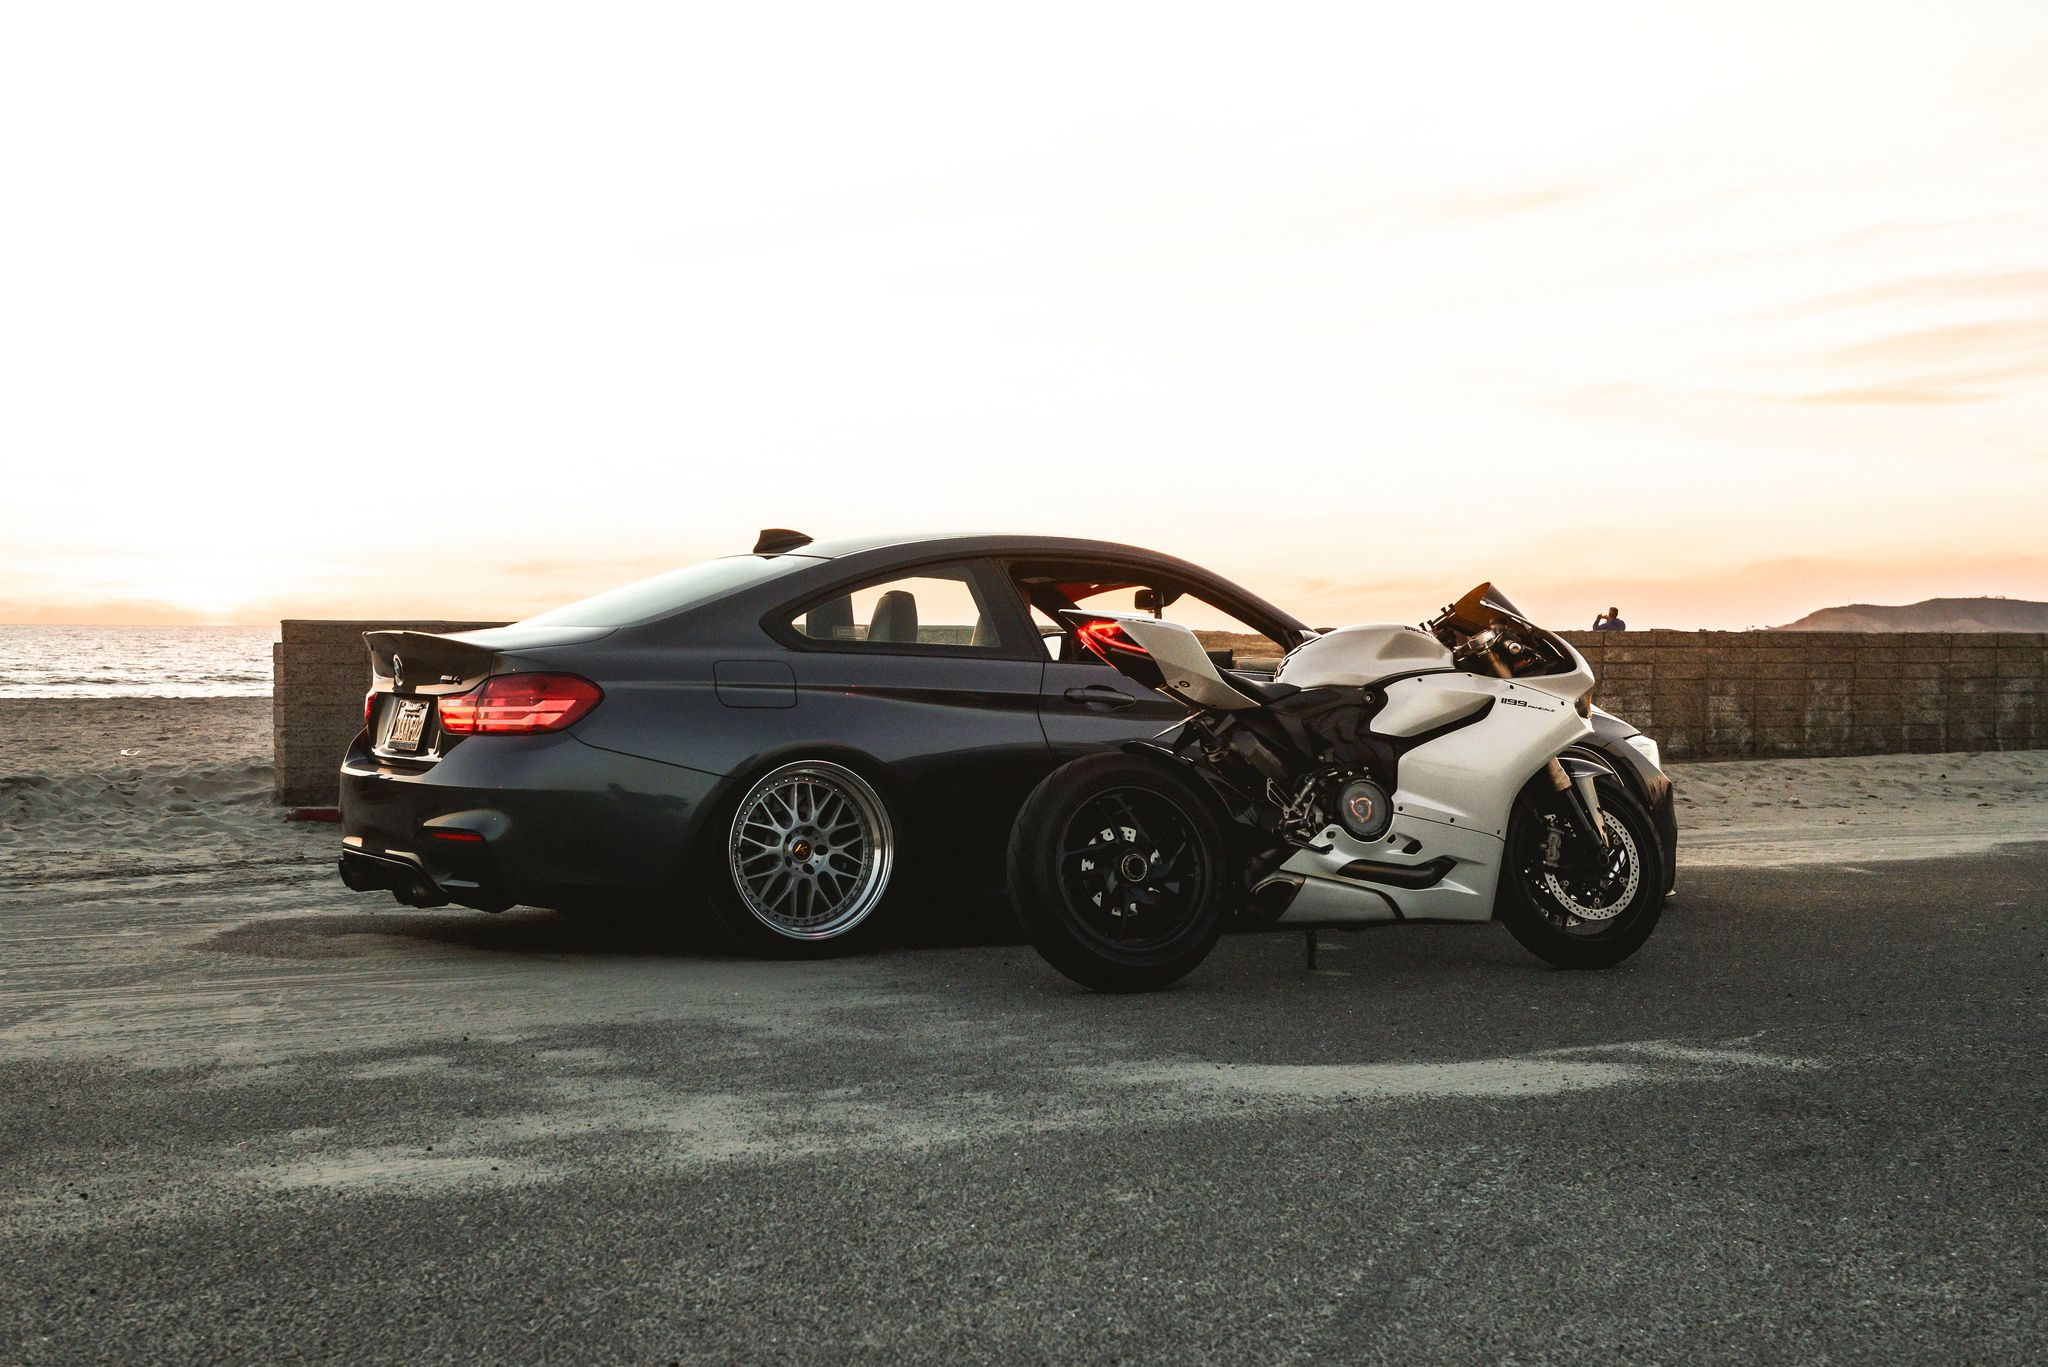 Ducati 1199 Panigale with BMW M4 F82